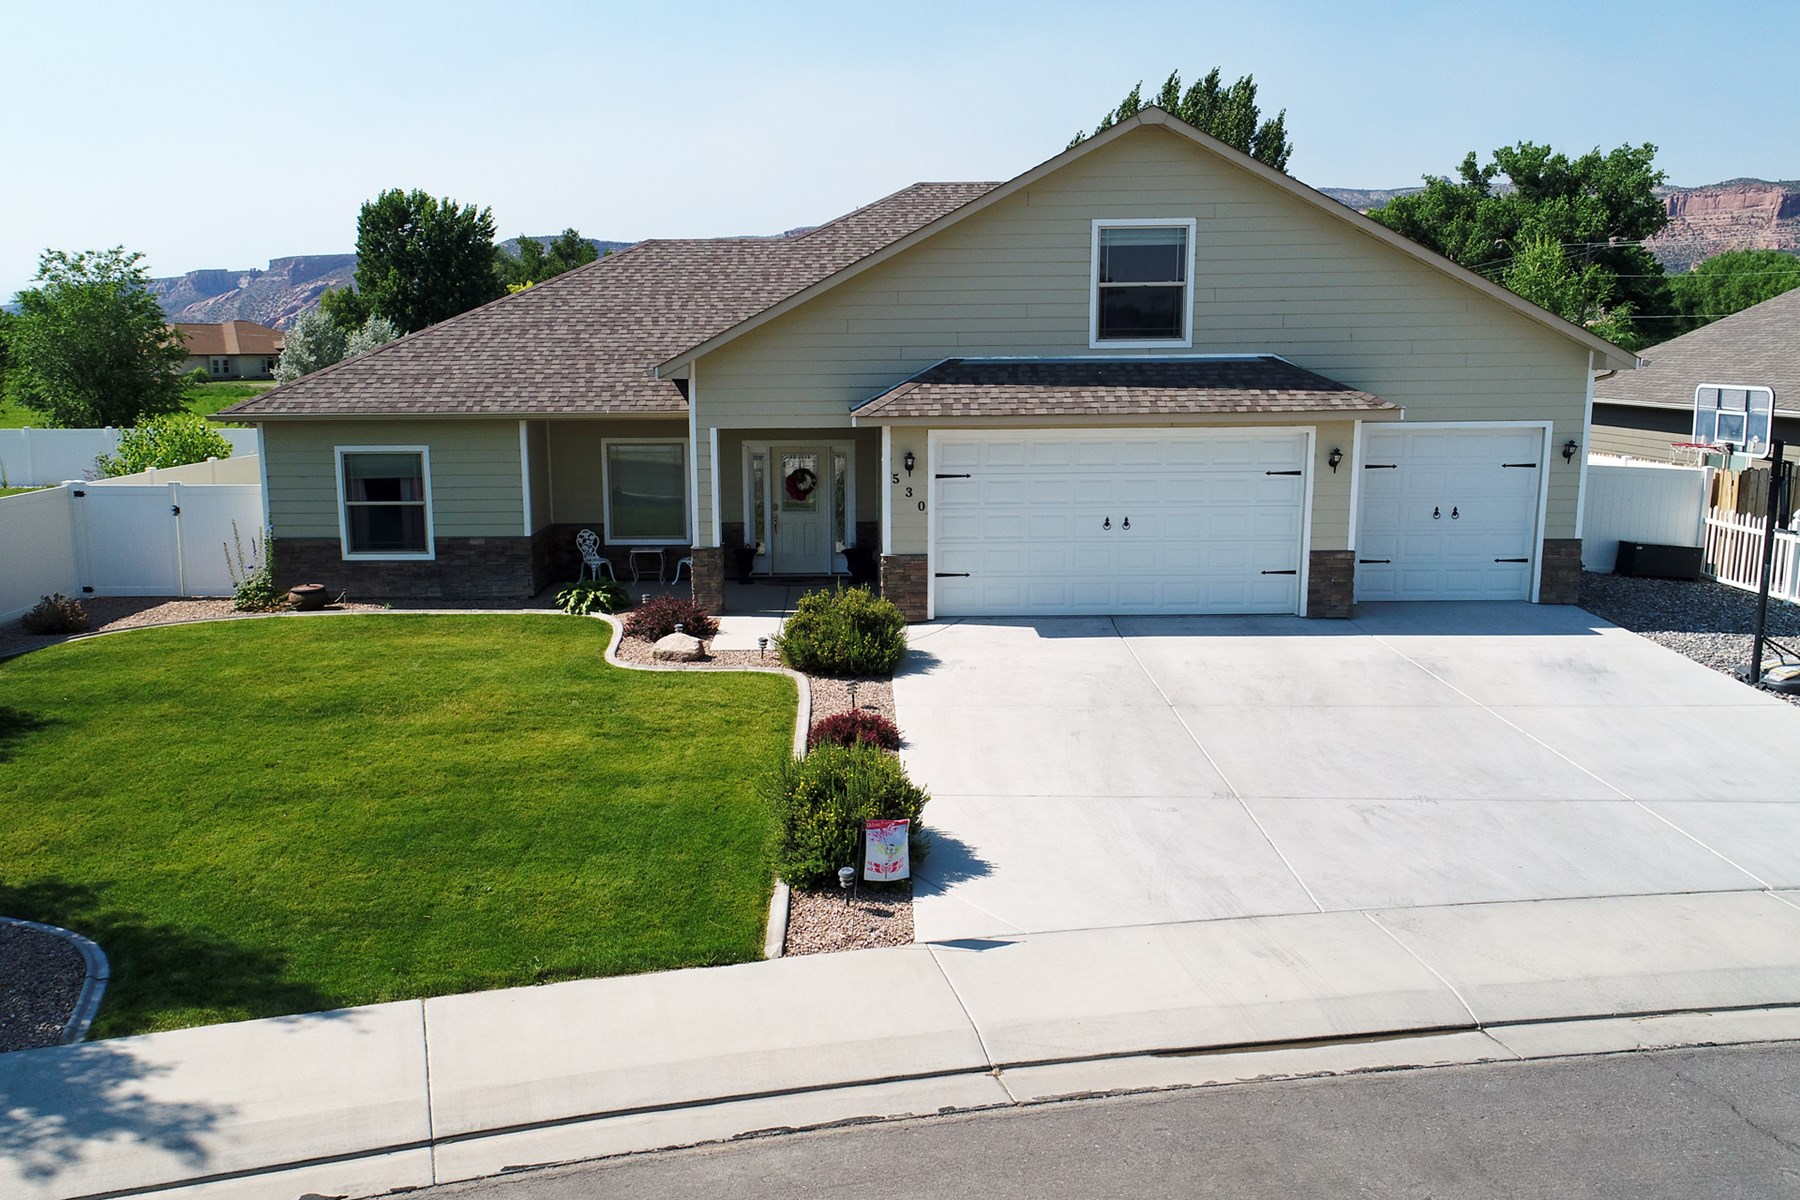 Home Near National Monument in Fruita For Sale